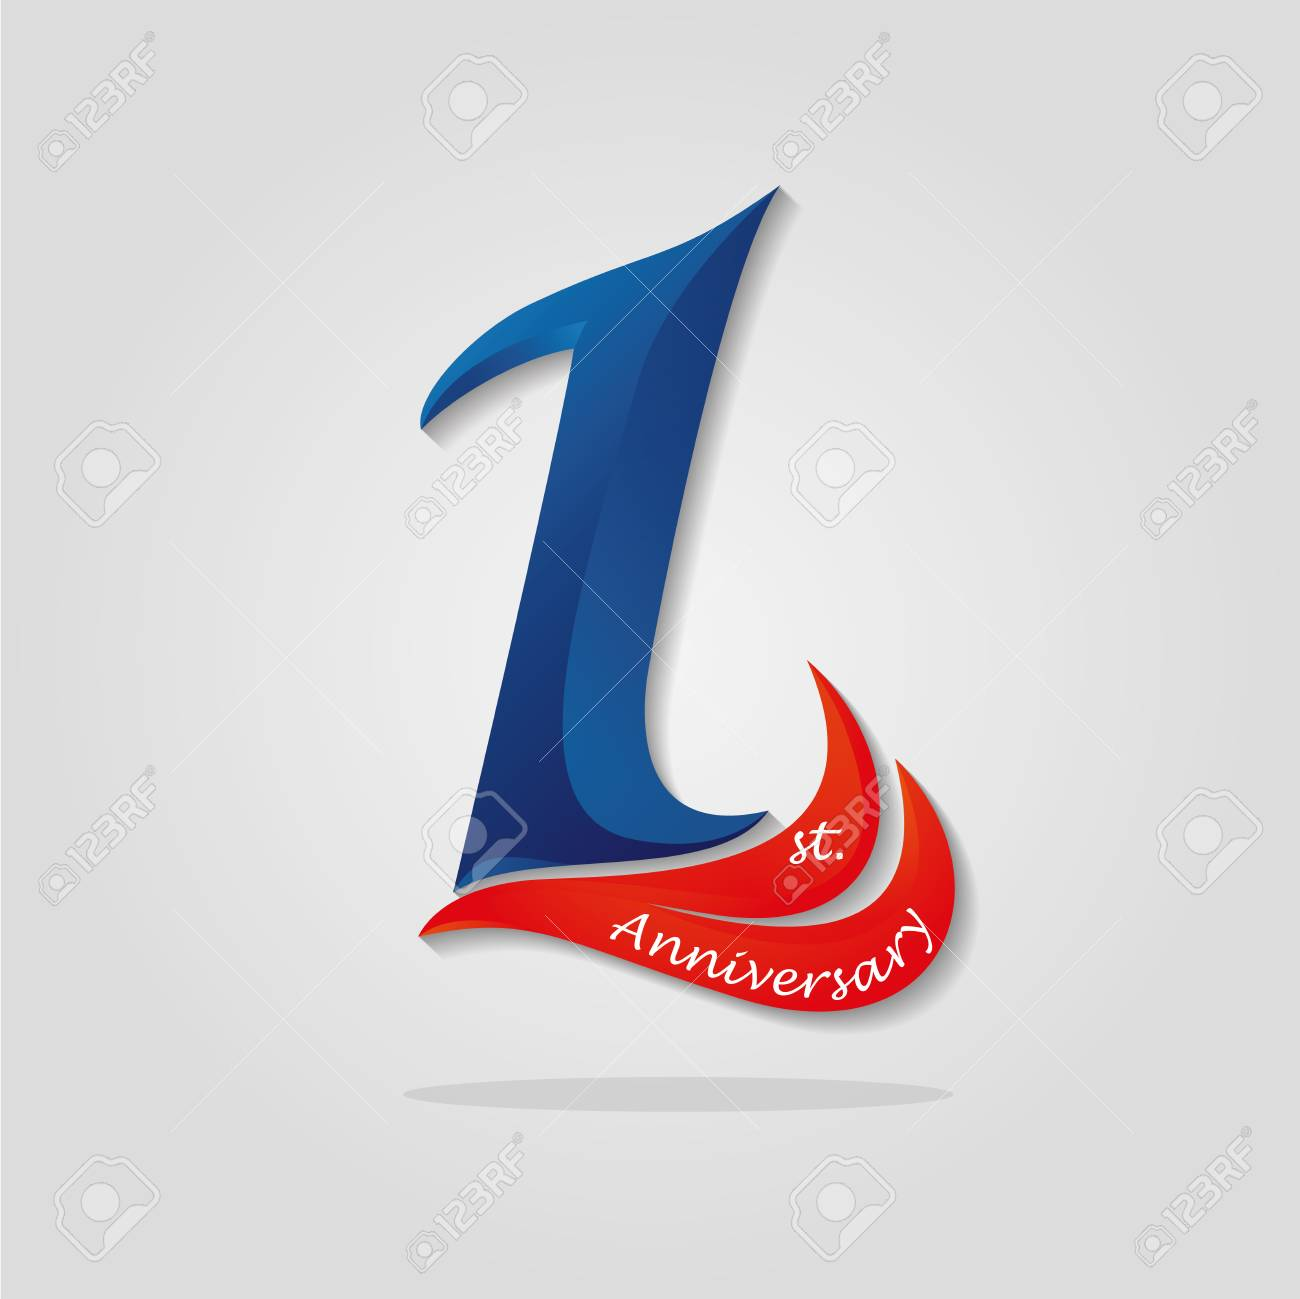 one years anniversary celebration logotype 1st anniversary logo royalty free cliparts vectors and stock illustration image 87281630 one years anniversary celebration logotype 1st anniversary logo